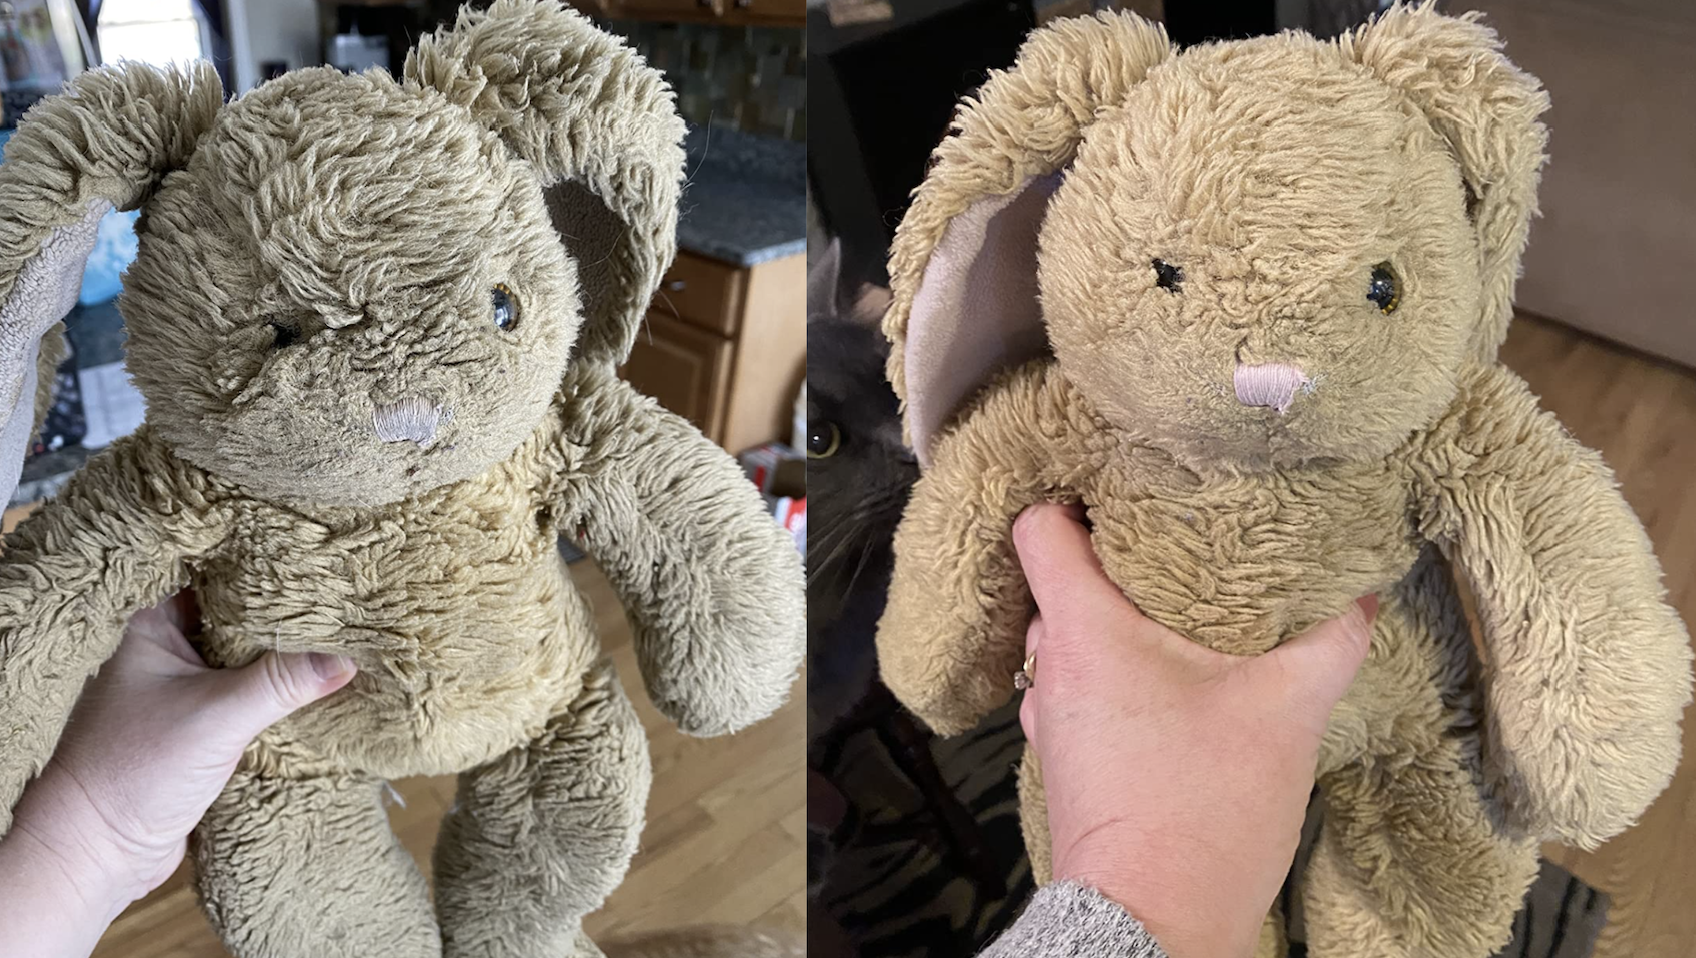 A customer review photo showing their stuffed animal before and after cleaning it with the spot treatment